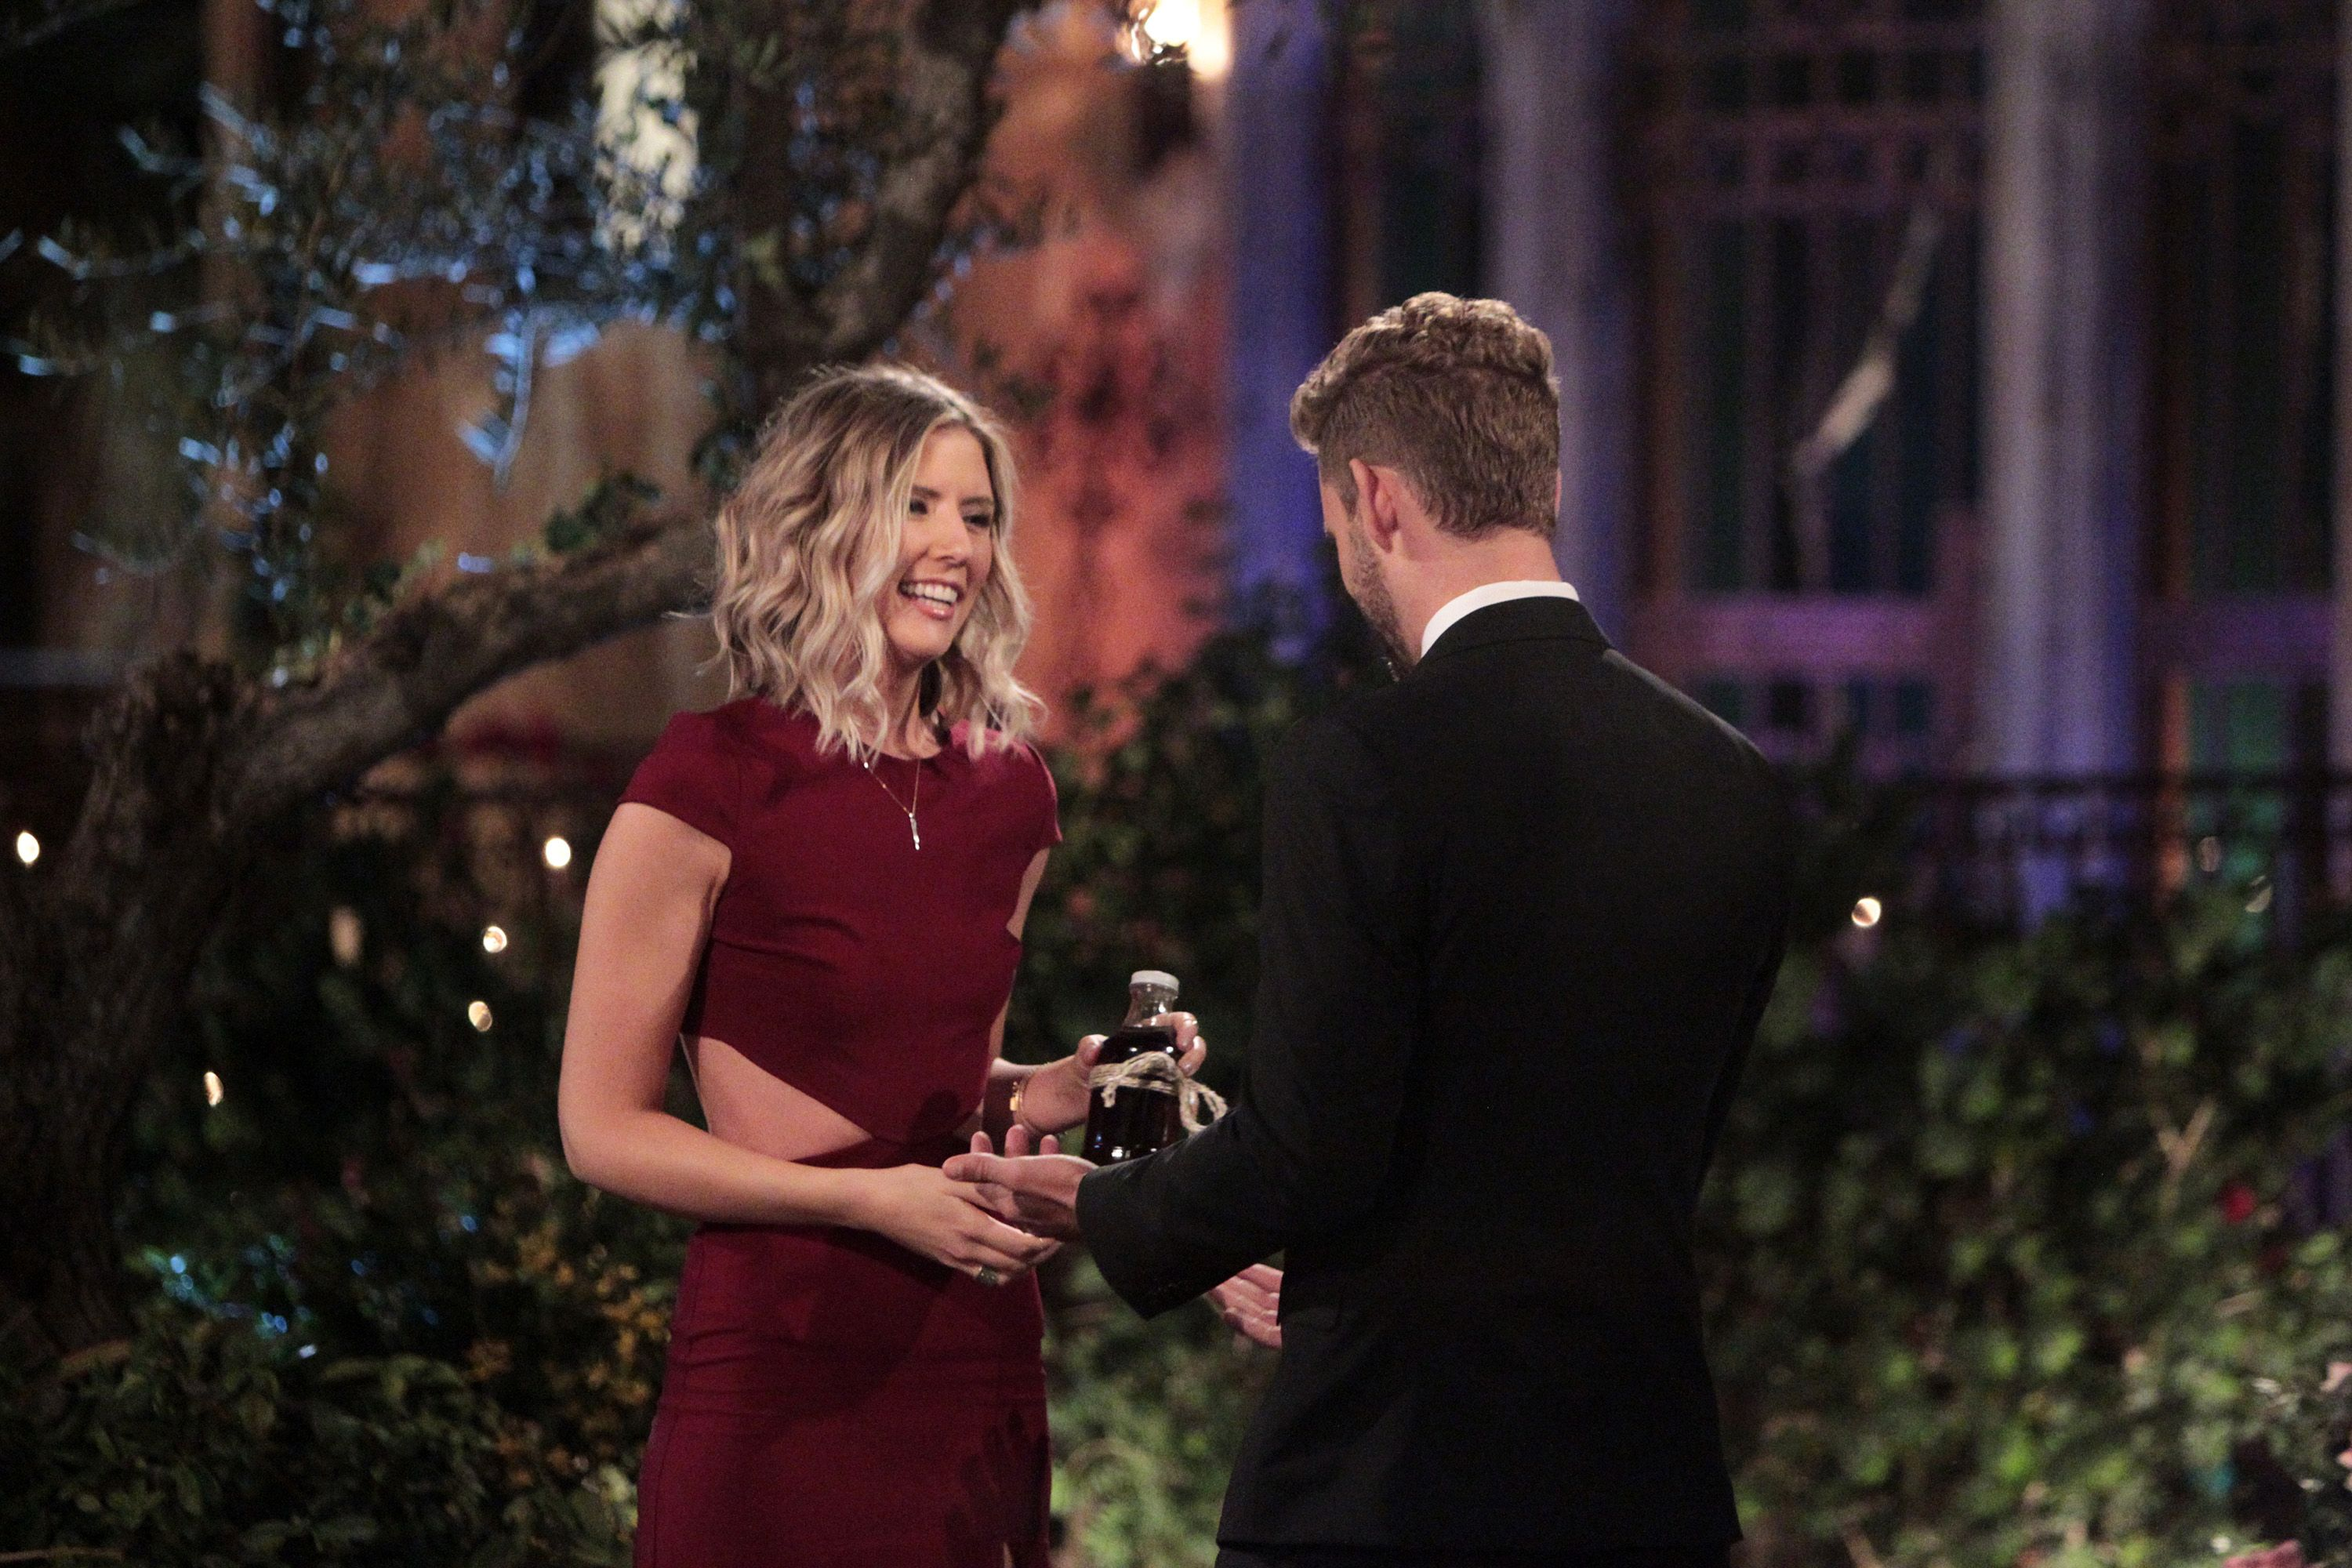 nick viall the bachelor steams up fantasy suites knocking out rachel 2017 images